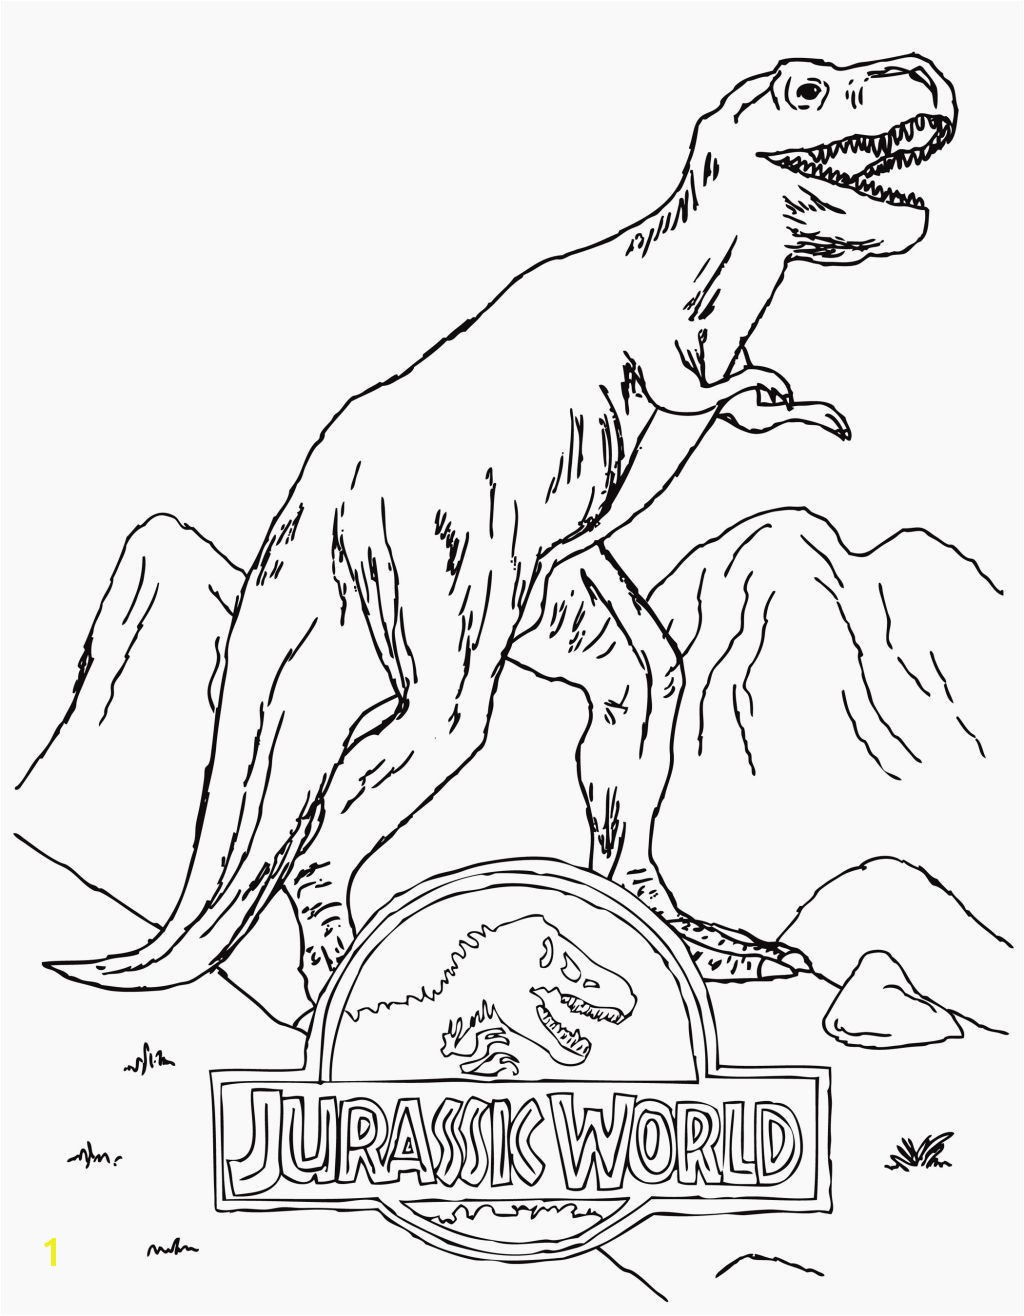 Jurassic Park Dinosaur Coloring Pages Jurassic World Coloring Sheets Coloring Pages Pinterest